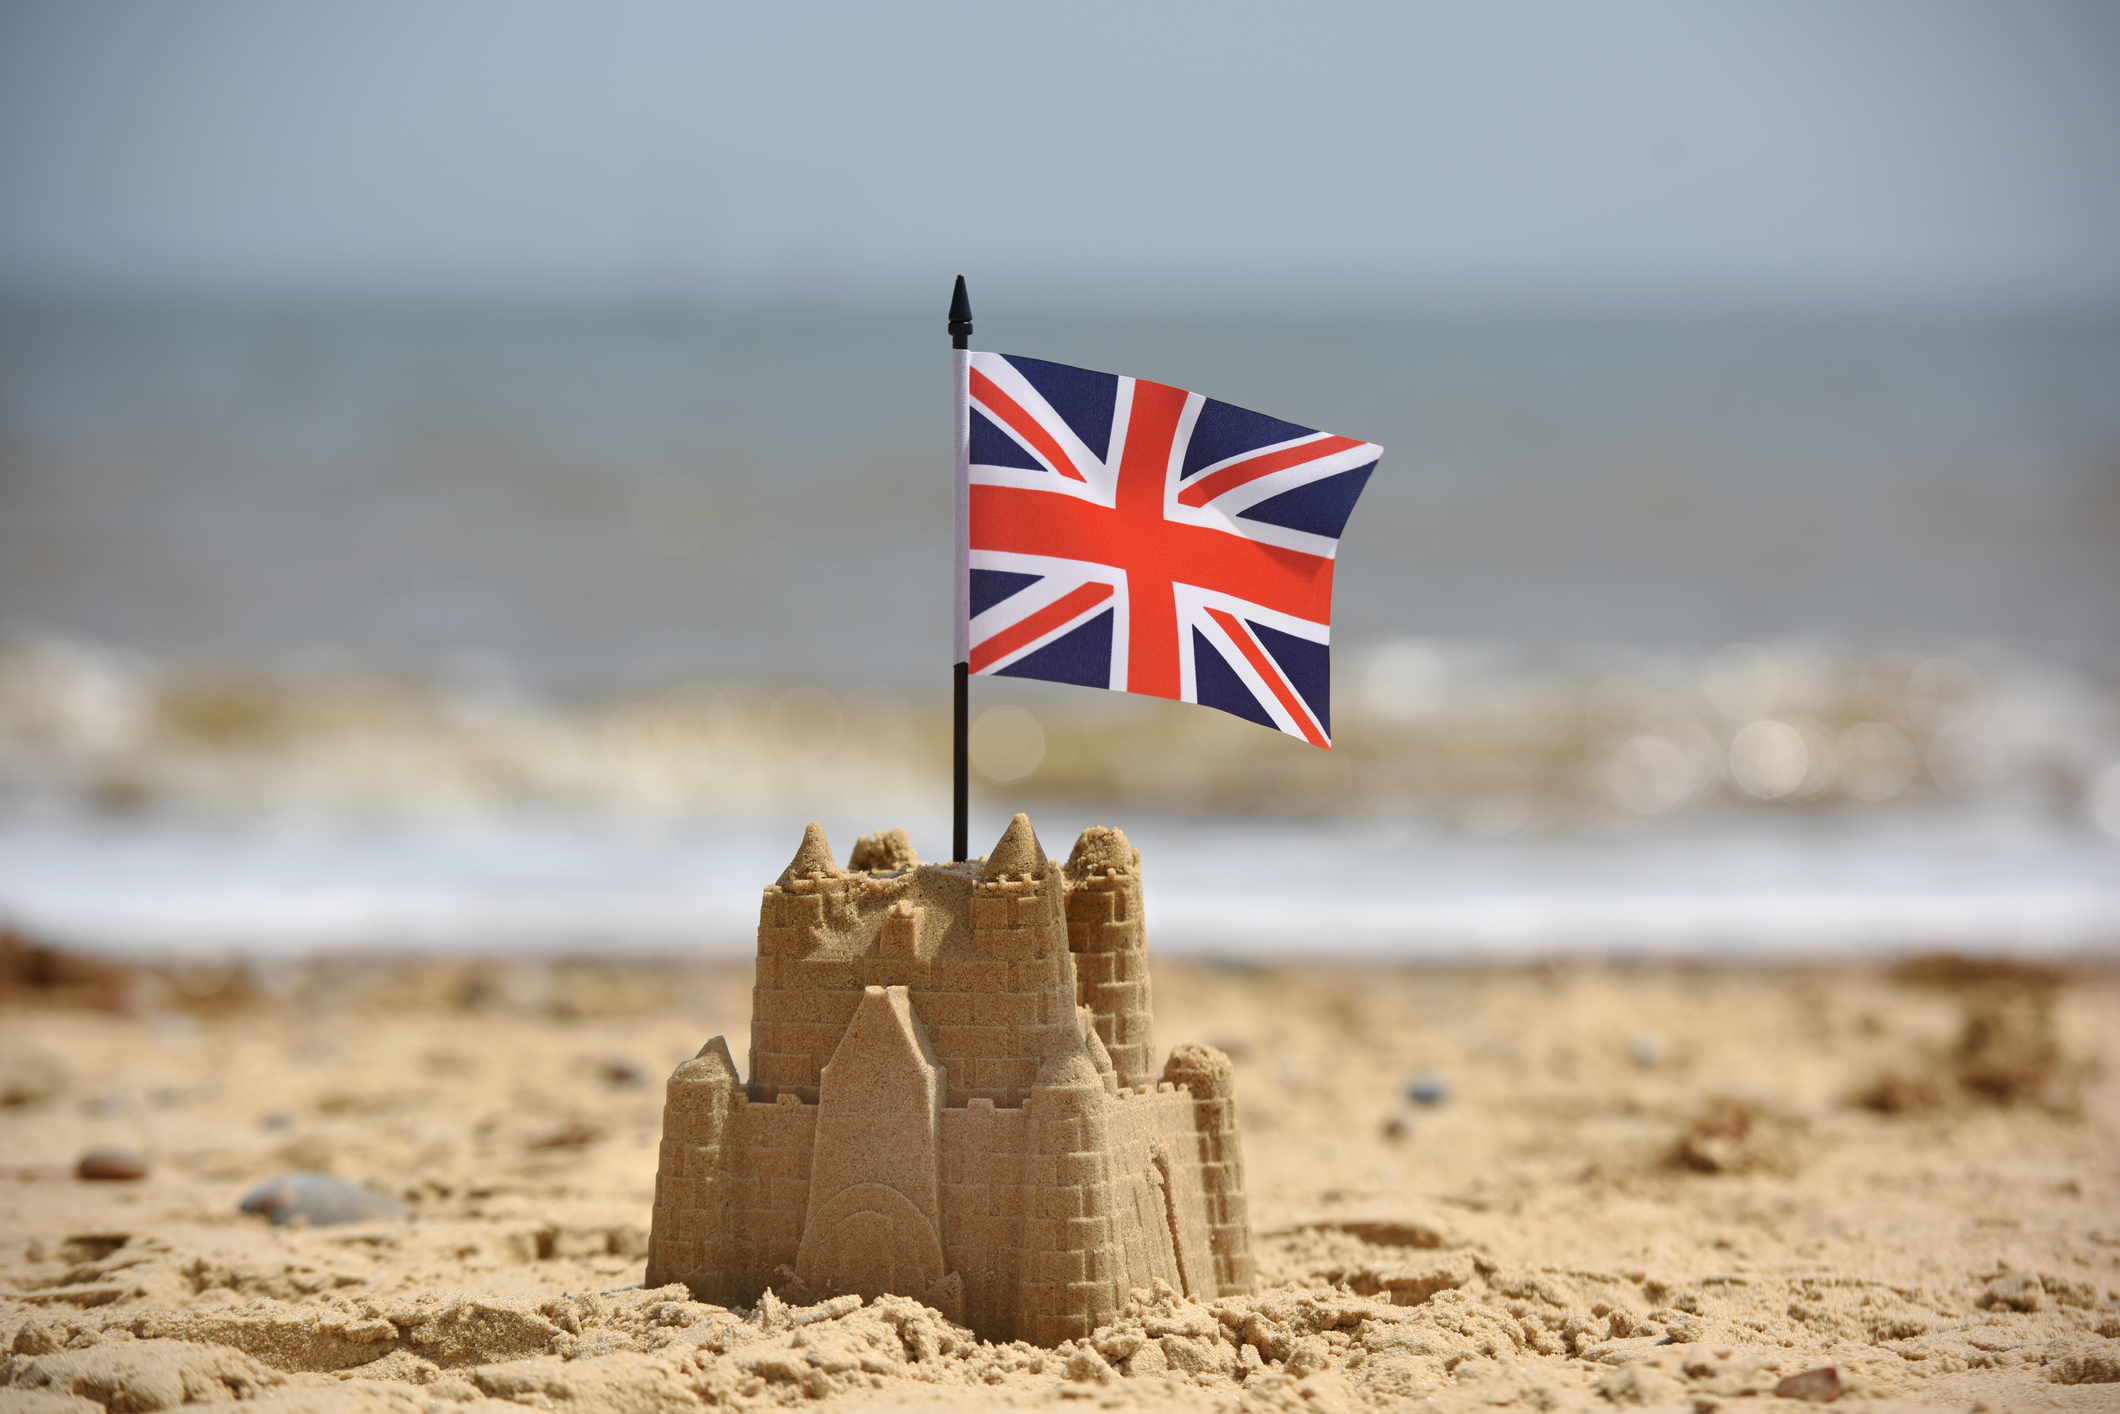 A lone sandcastle on an English sandy beach with a British Union Jack flag.